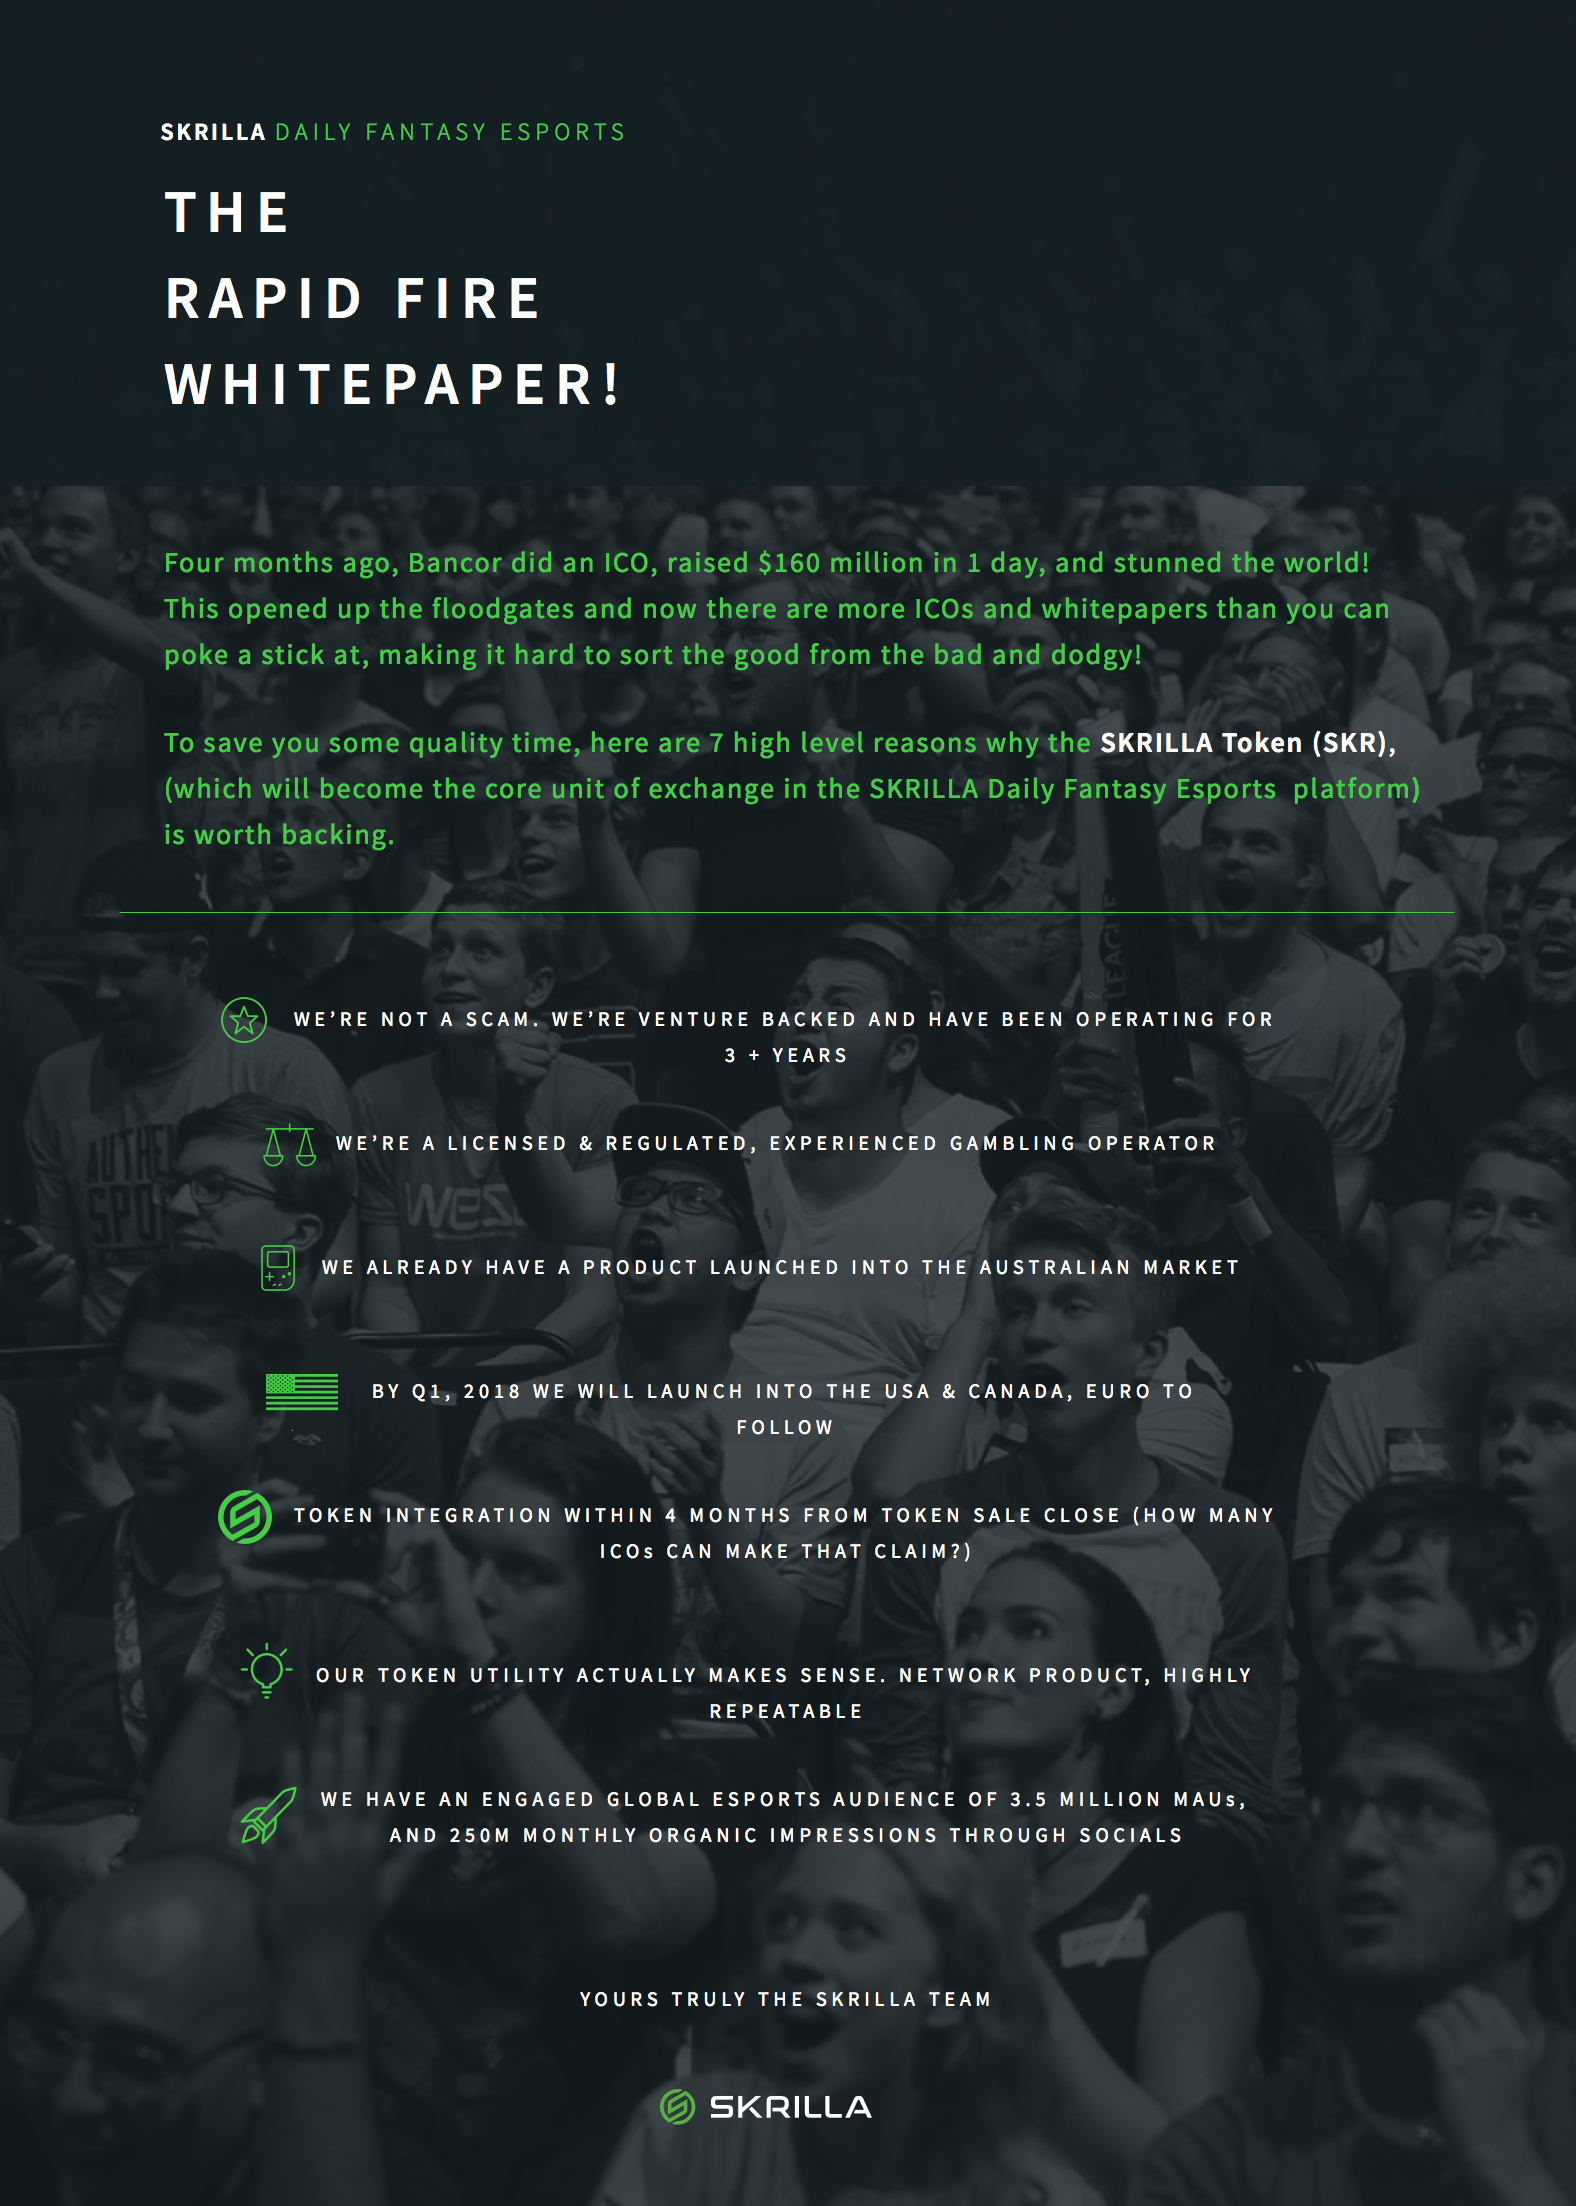 The Rapid Fire Whitepaper